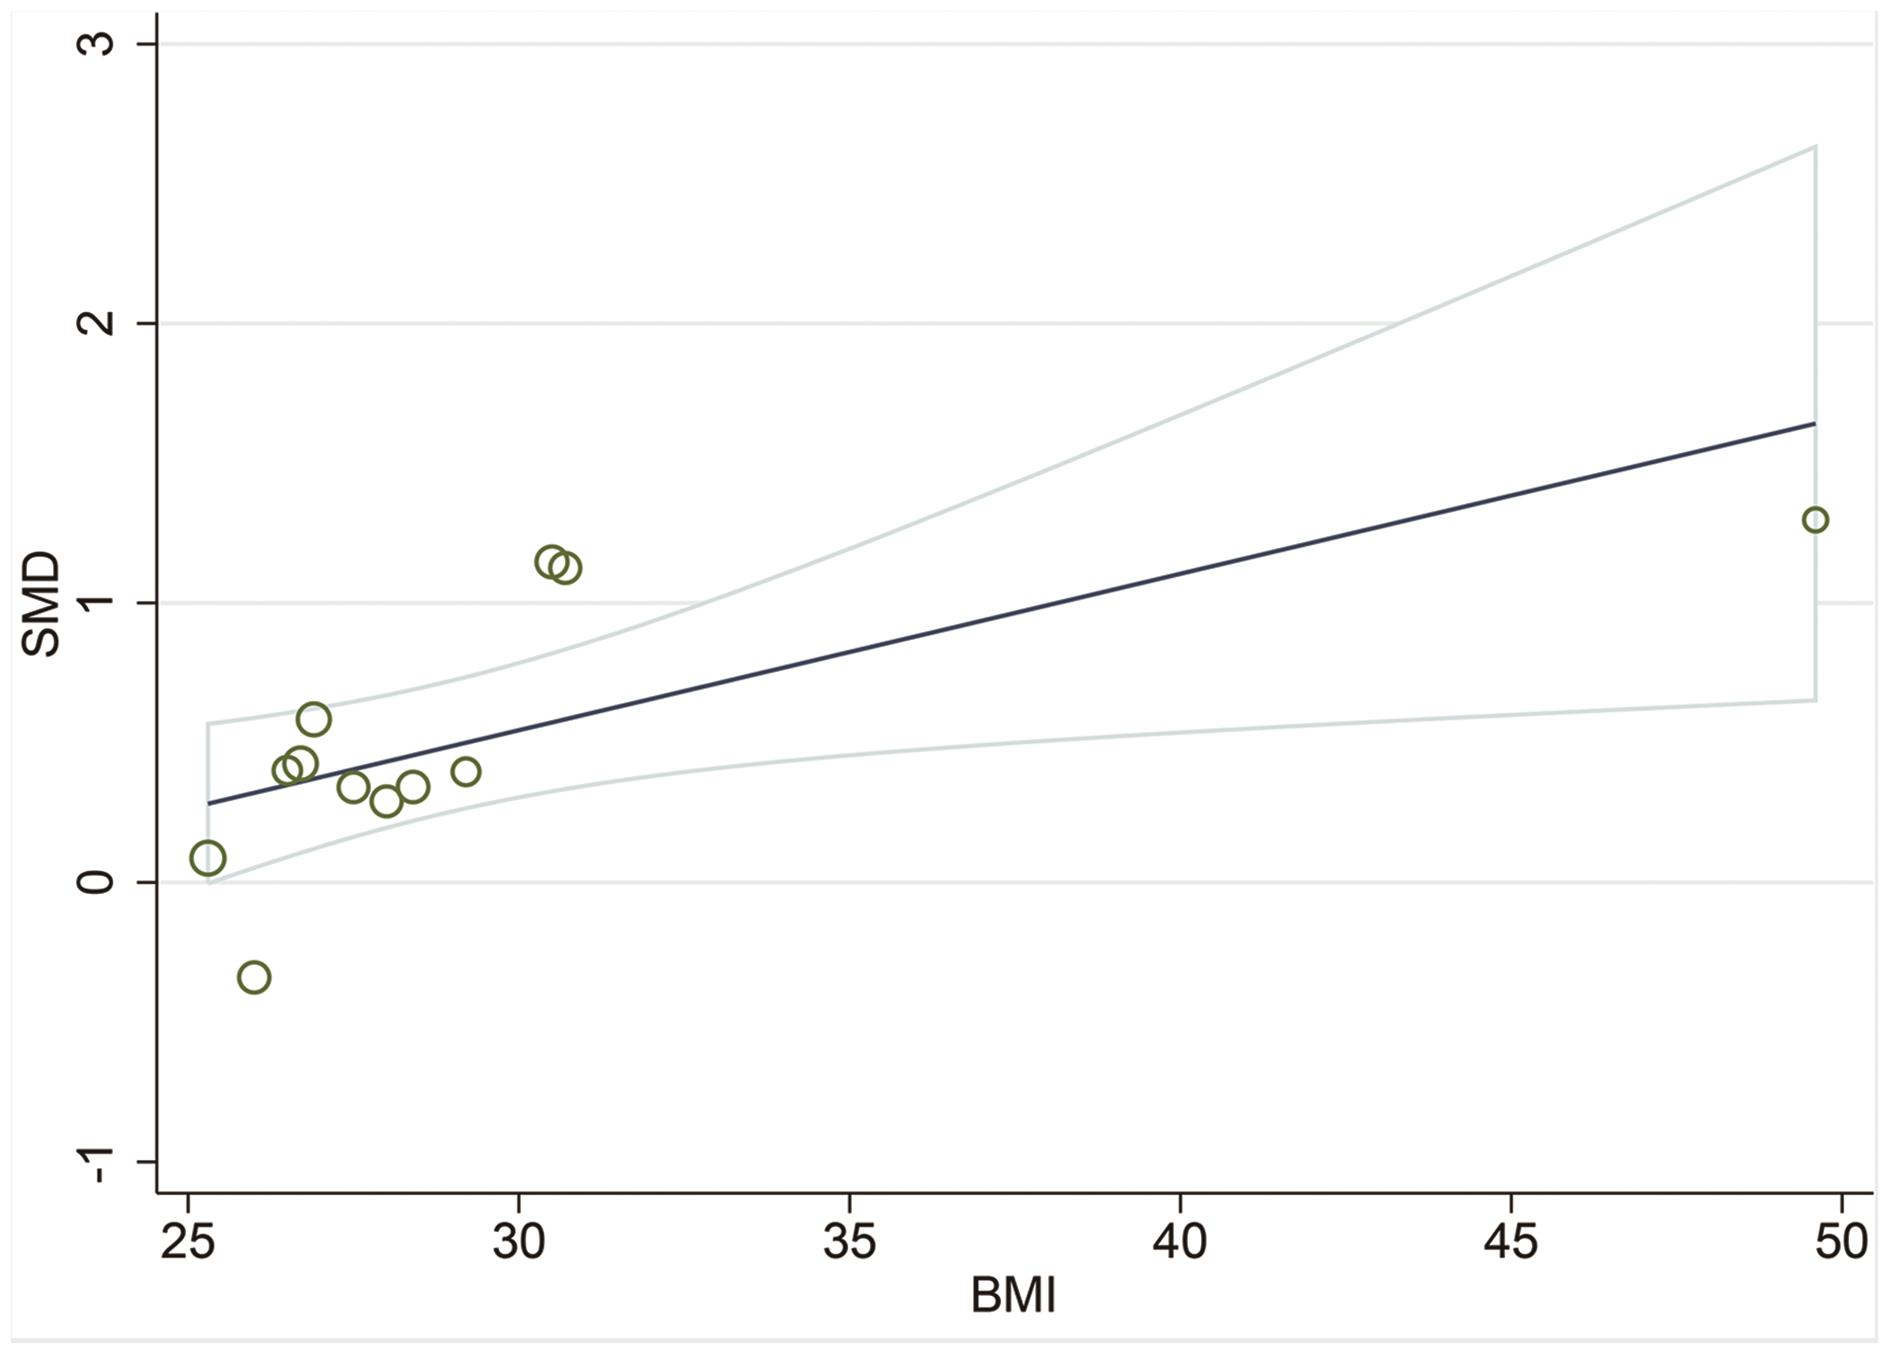 Meta-regression analysis for the effect of BMI on the NAFLD patients and healthy controls.